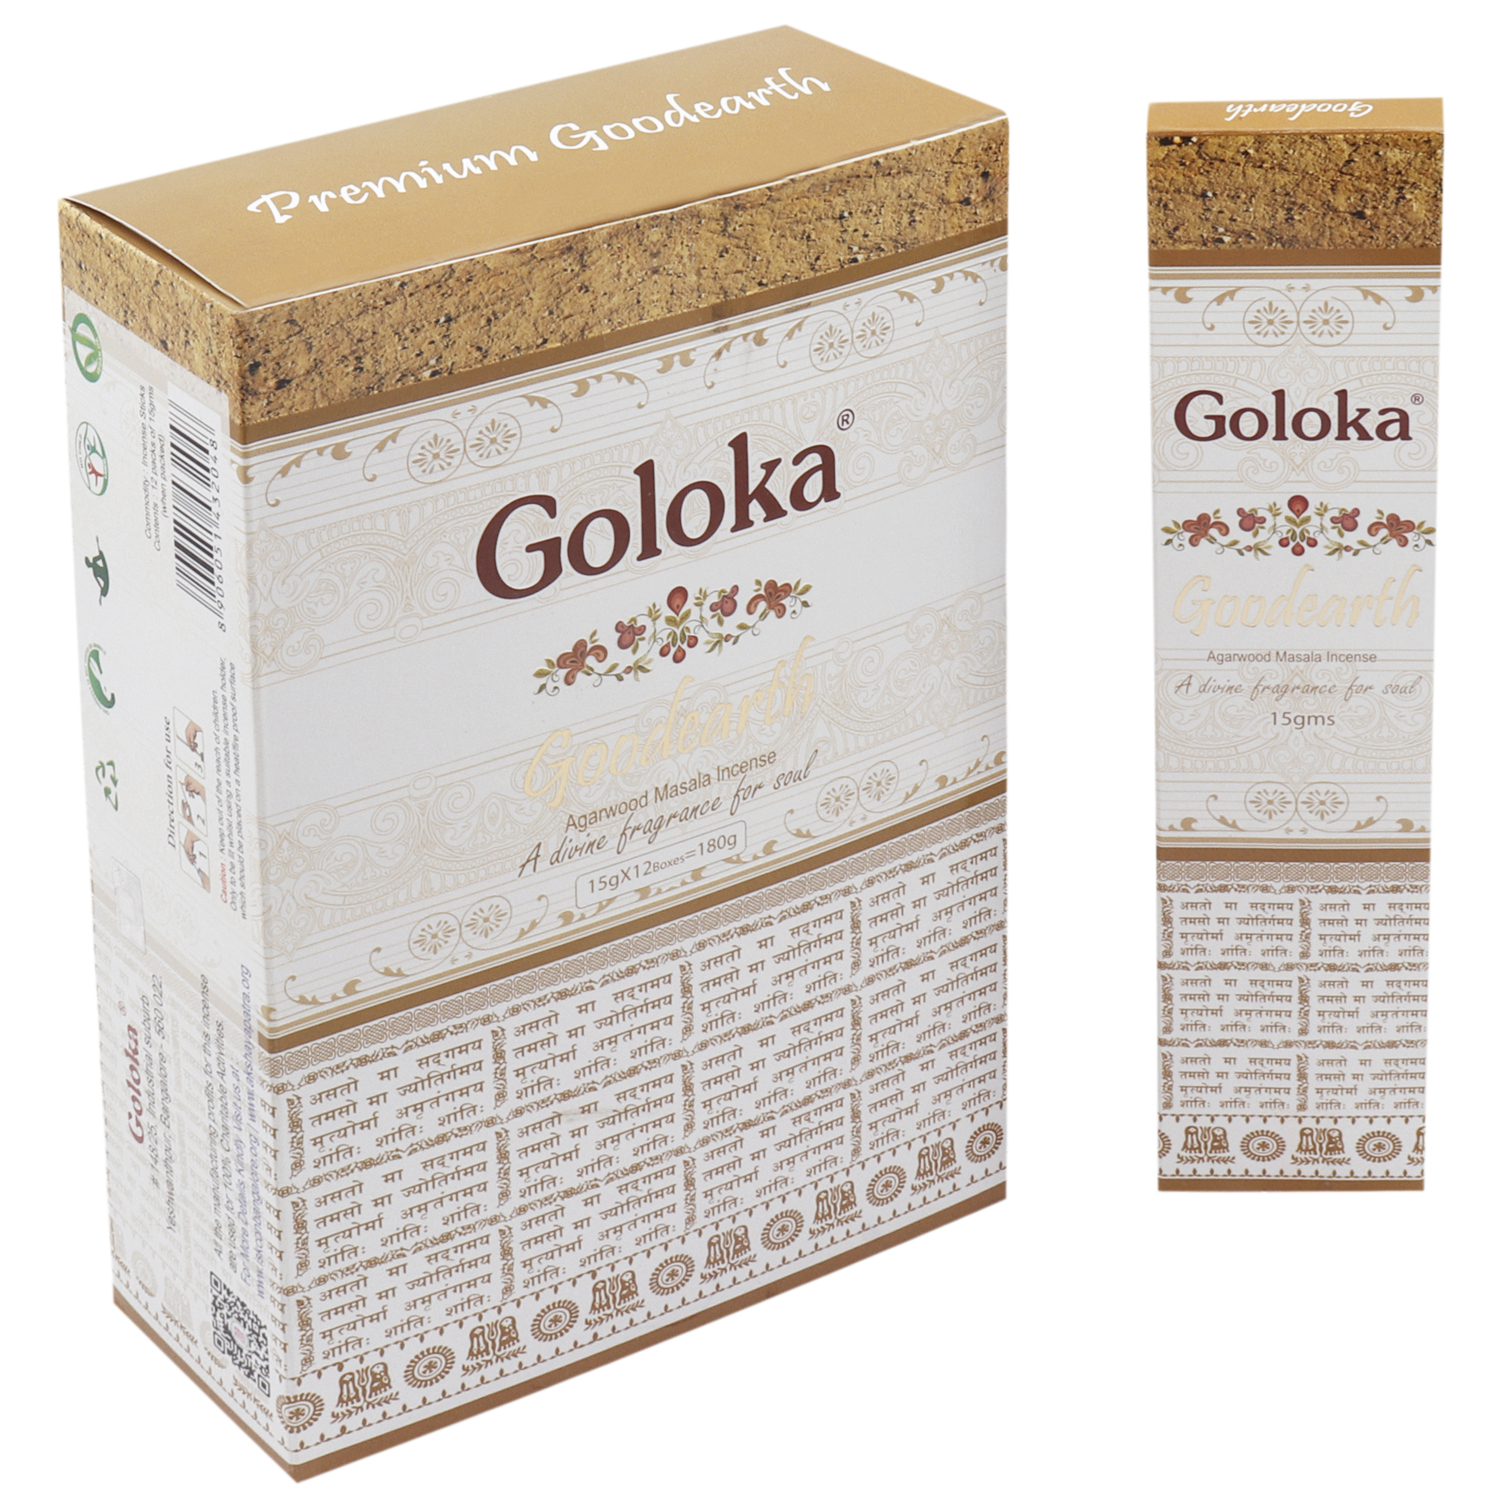 GOLOKA GOOD EARTH 15 GM